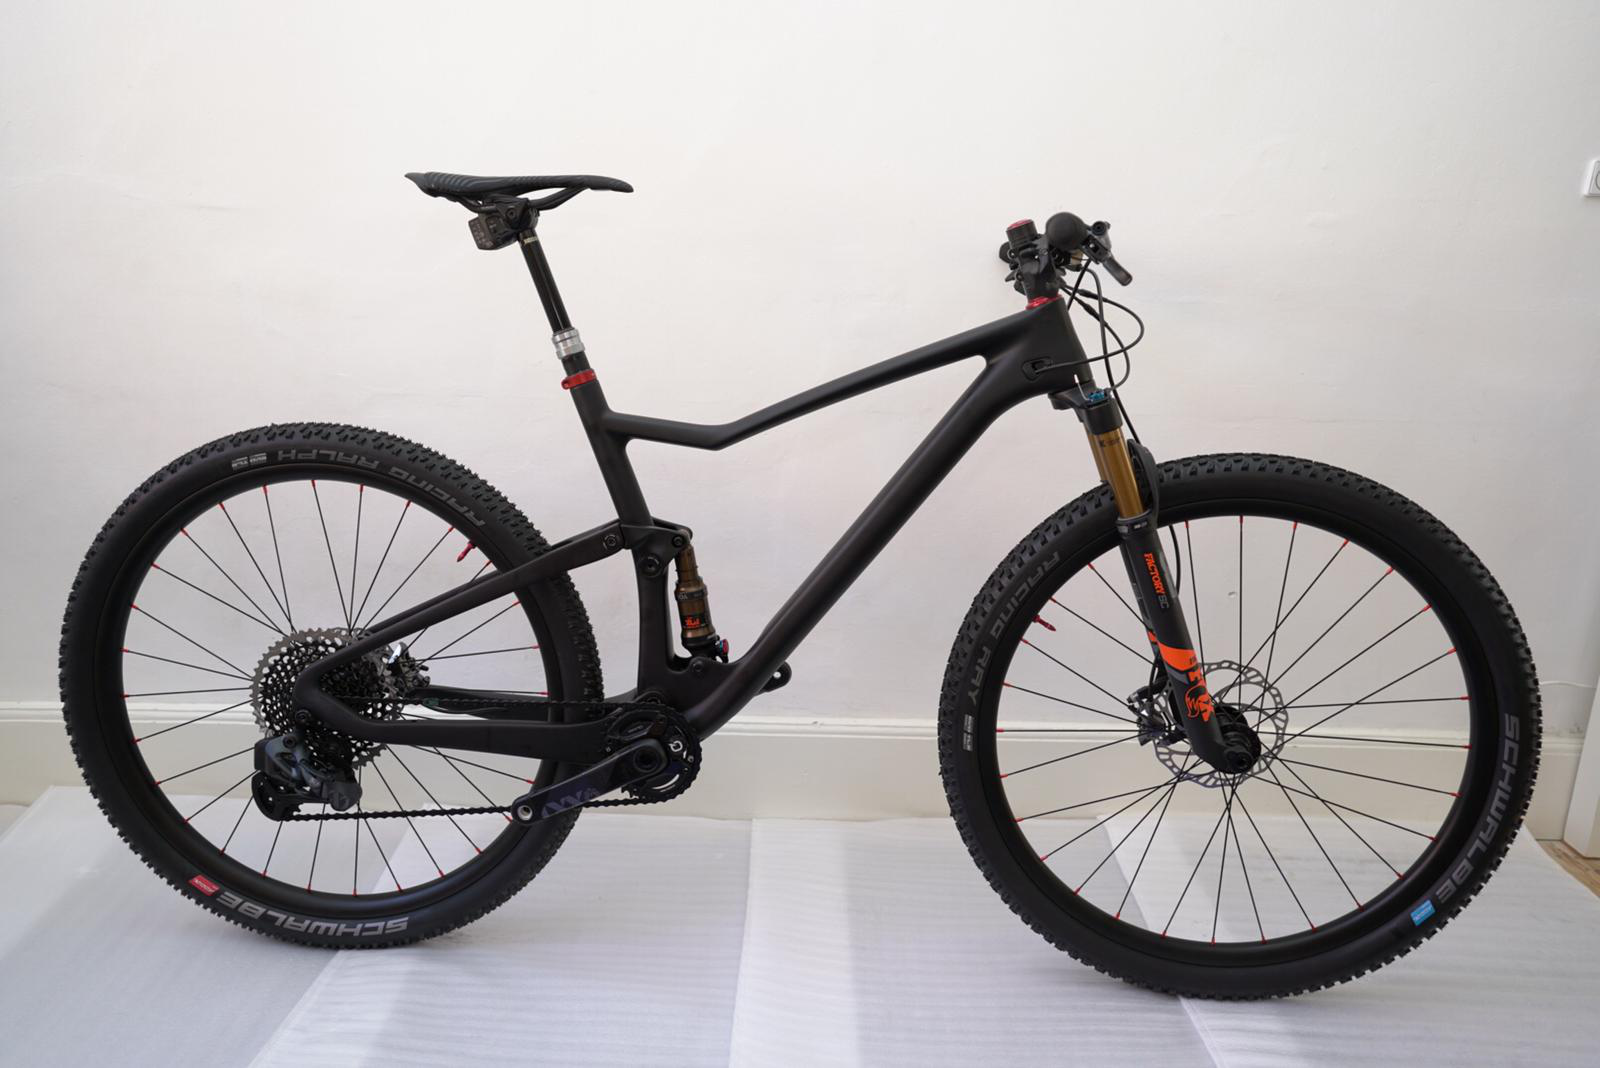 Trifox MFM100 MTB Frame Reviews from Youtube